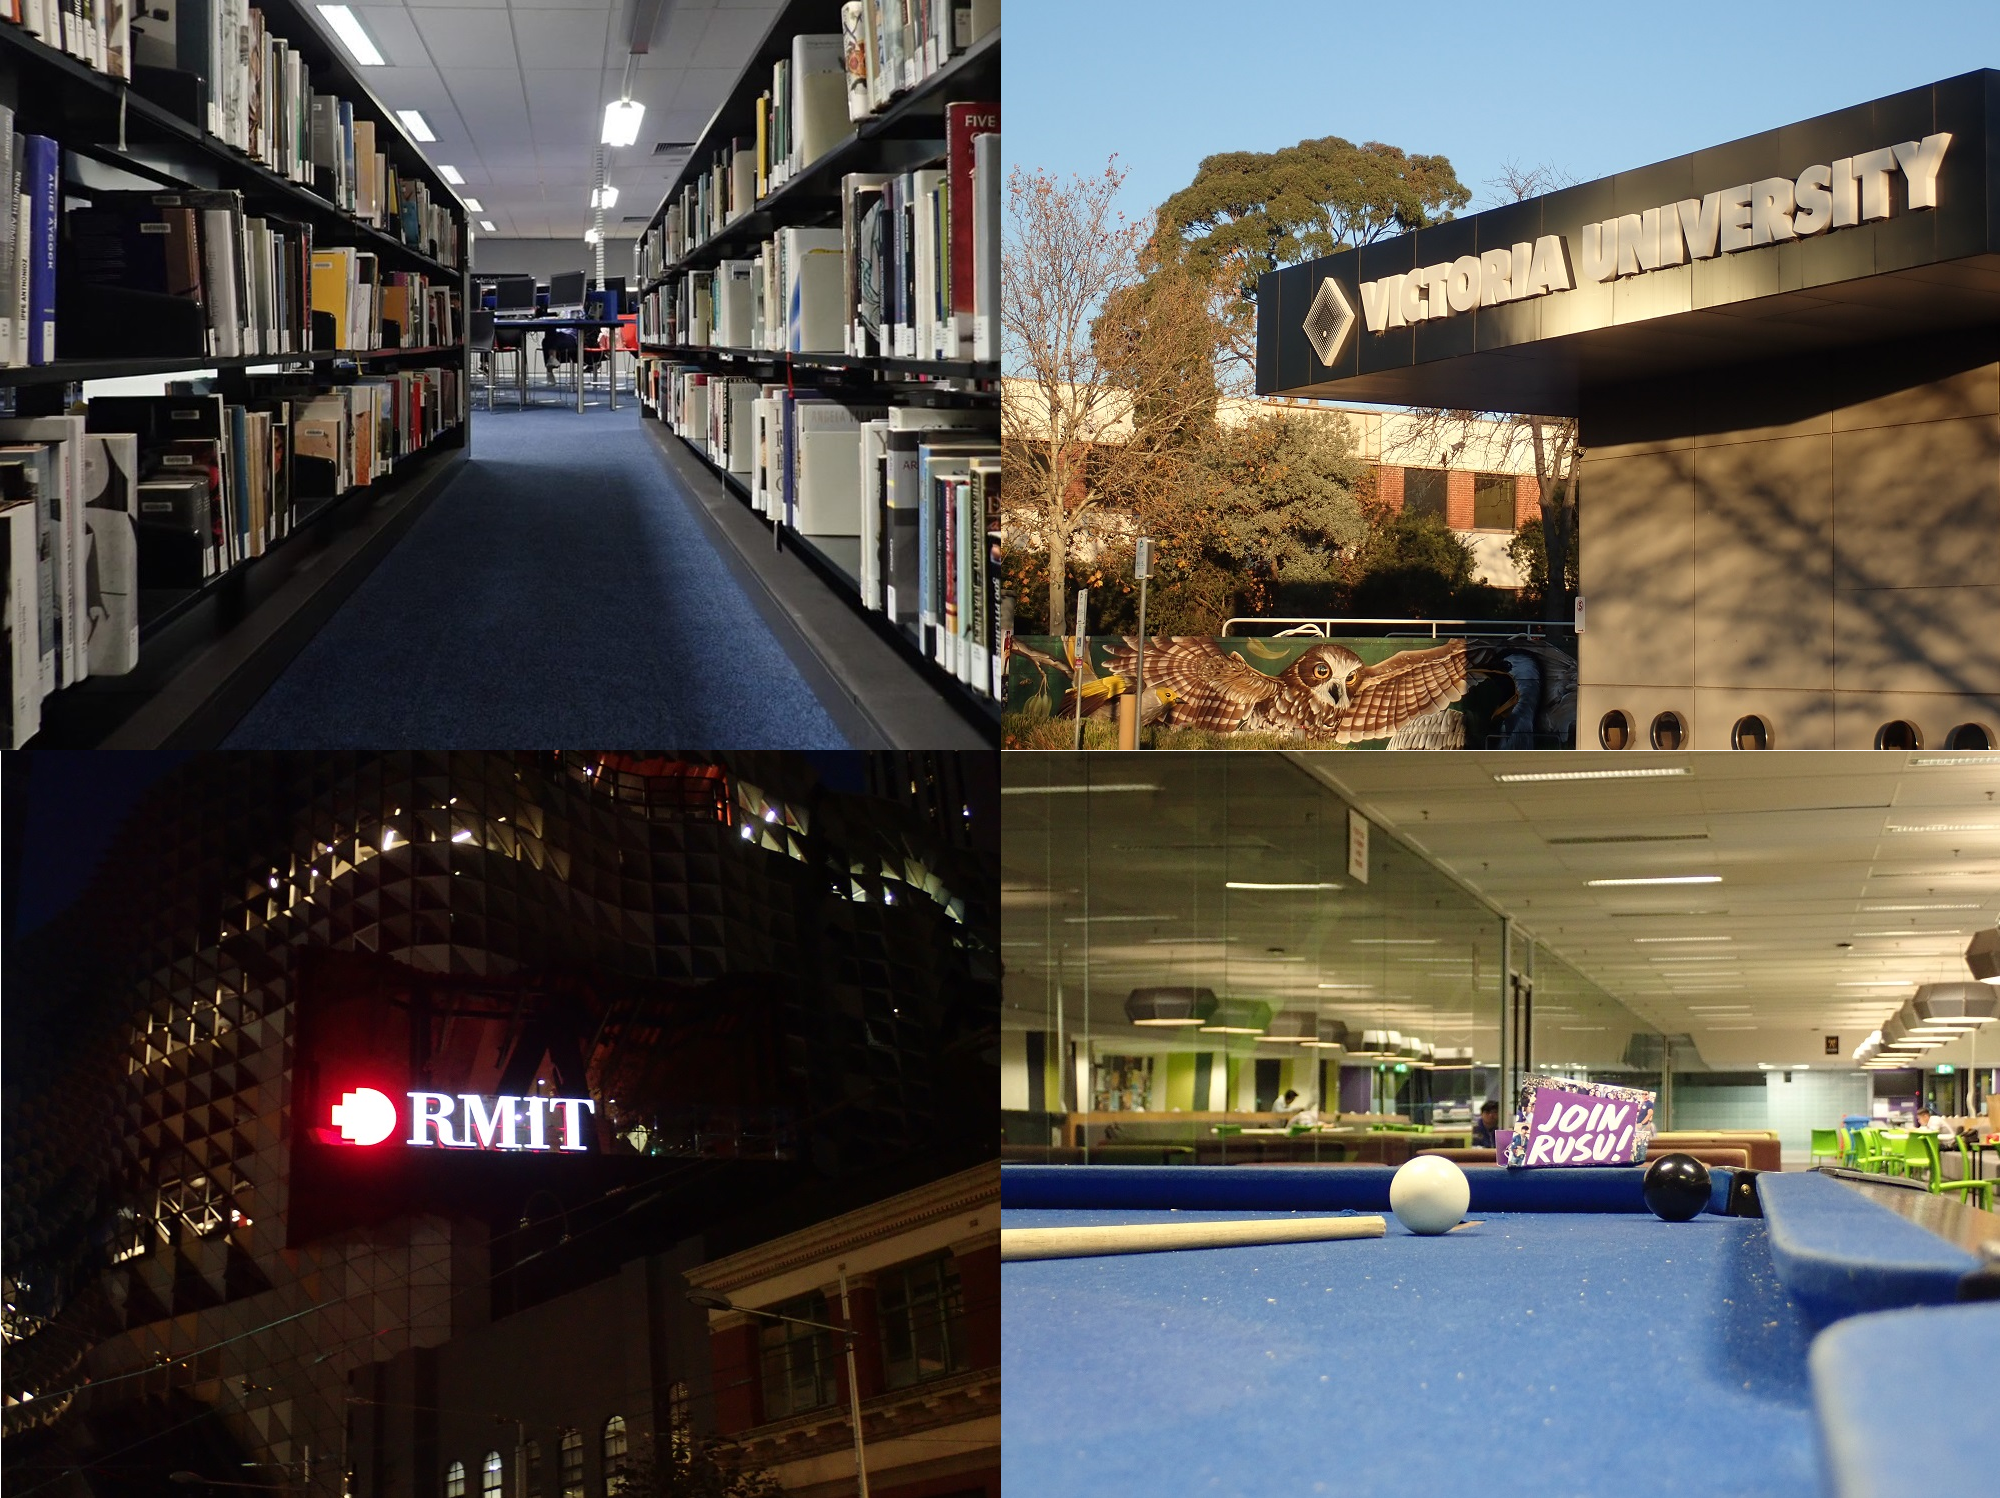 Collage image of a library, Victoria Uni, RMIT uni & a pool table